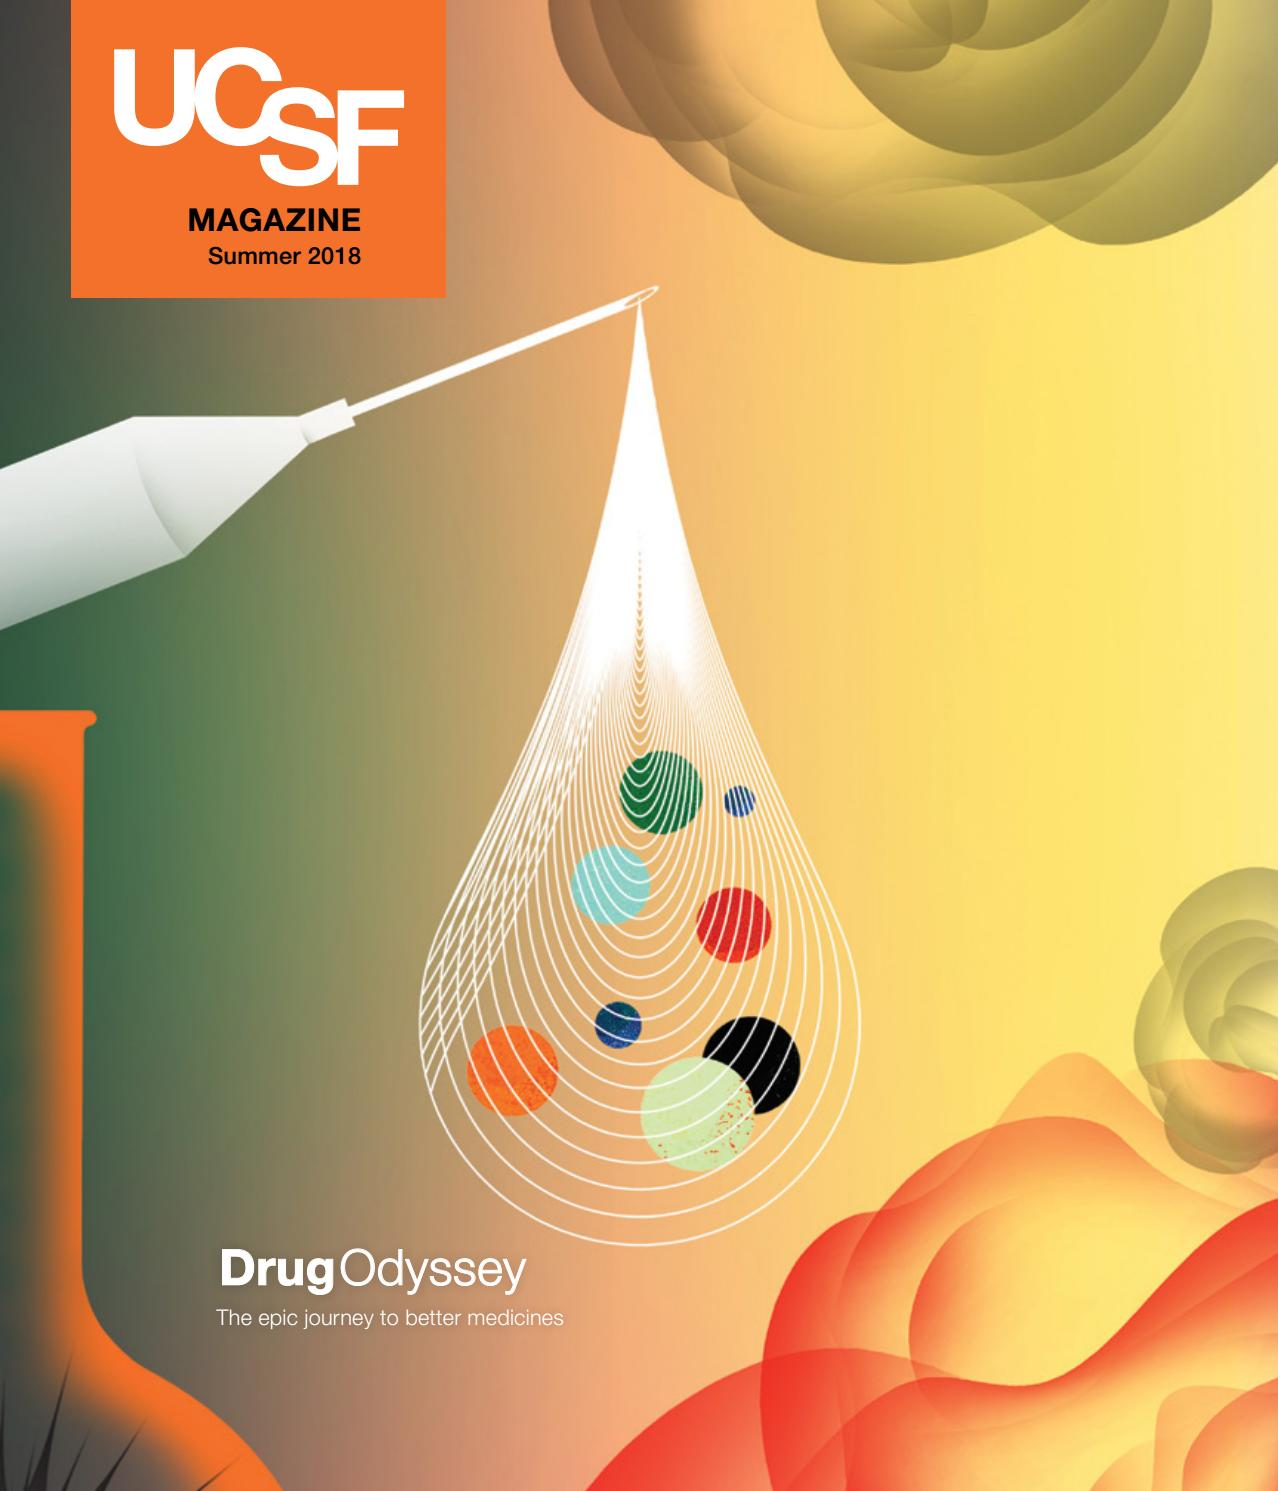 UCSF Magazine Summer 2018 by UCSF Magazine - issuu